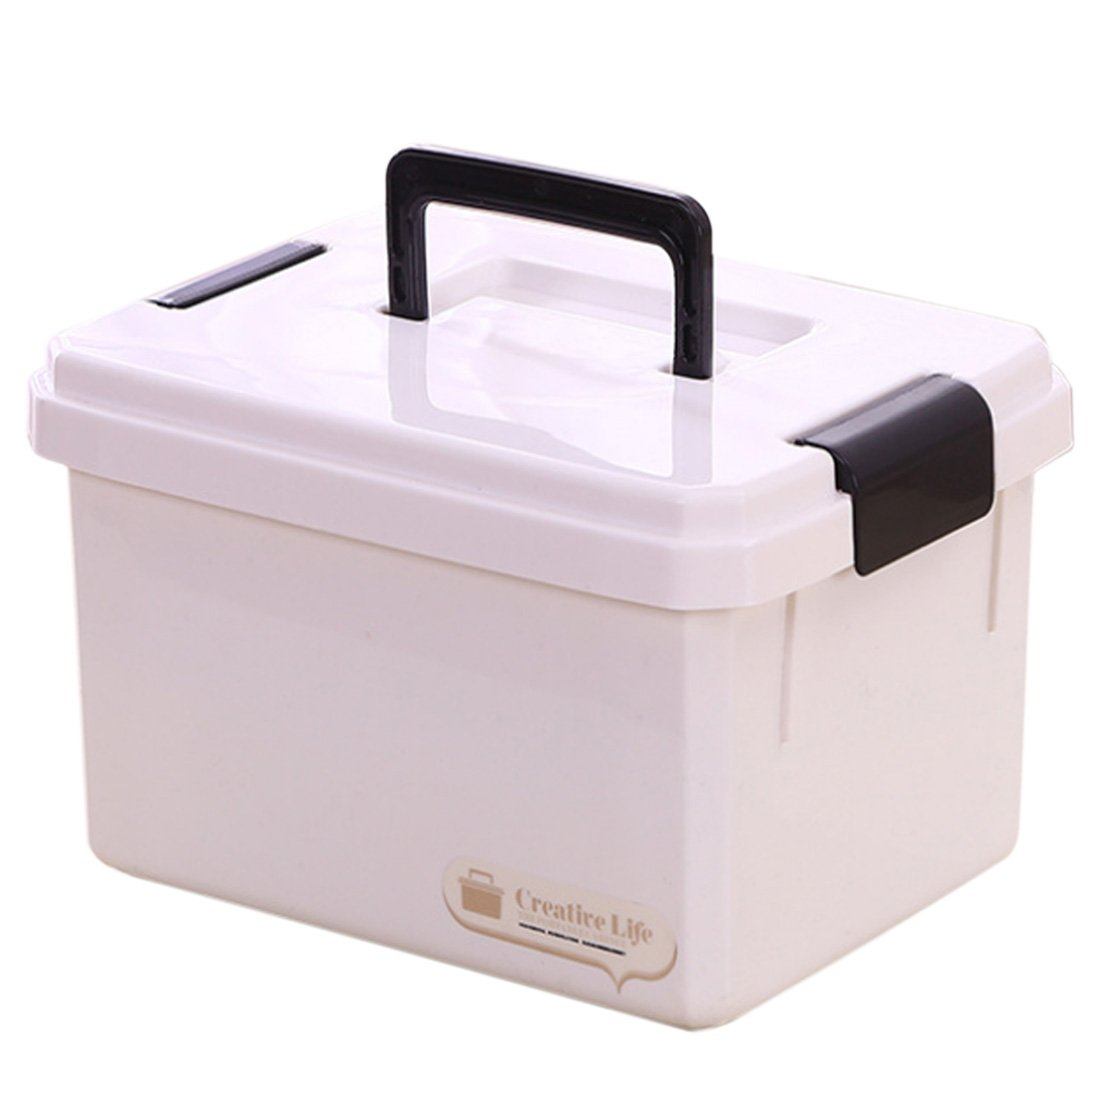 Haoun Medicine Box,Double-Layer First Aid Kit Portable Medicine Cabinet Family Emergency Kit Storage Box- Large